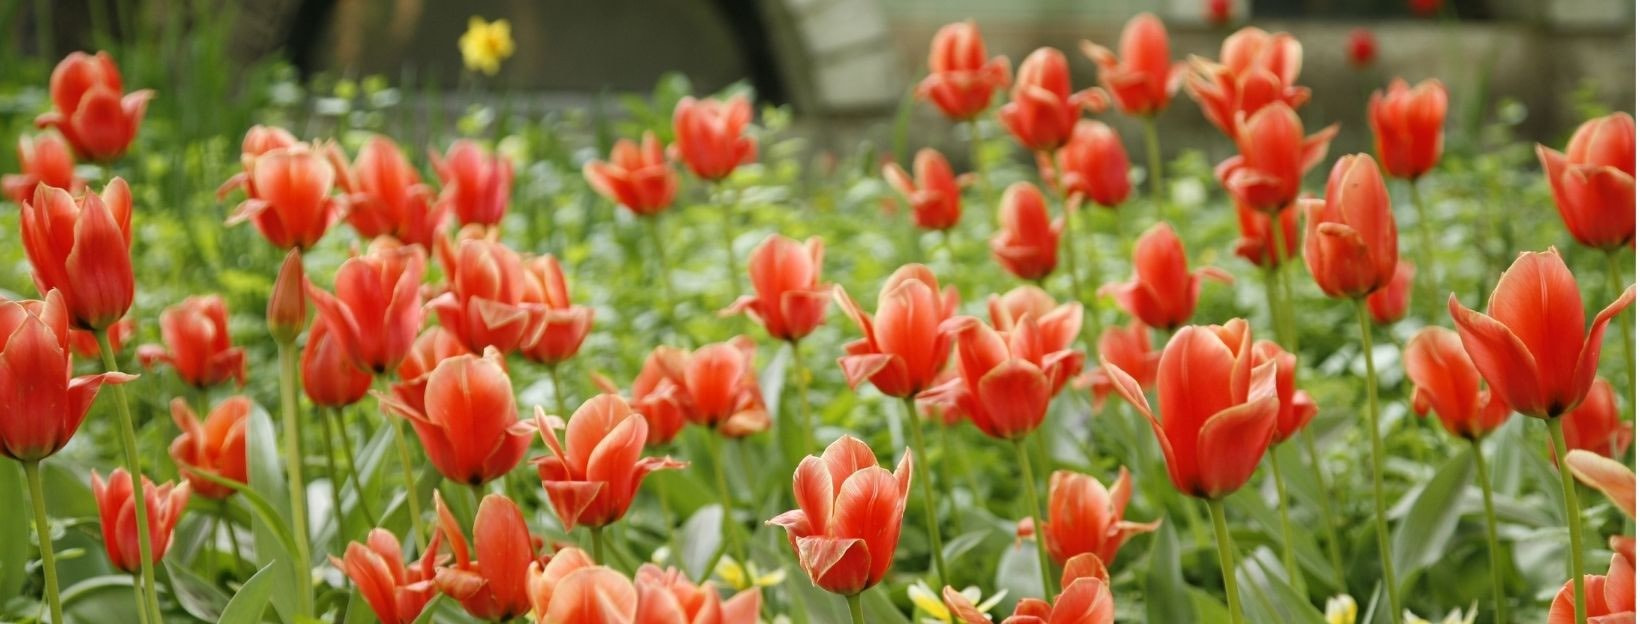 BANNER-Canva-MAEN4uofweo-red-tulips-field